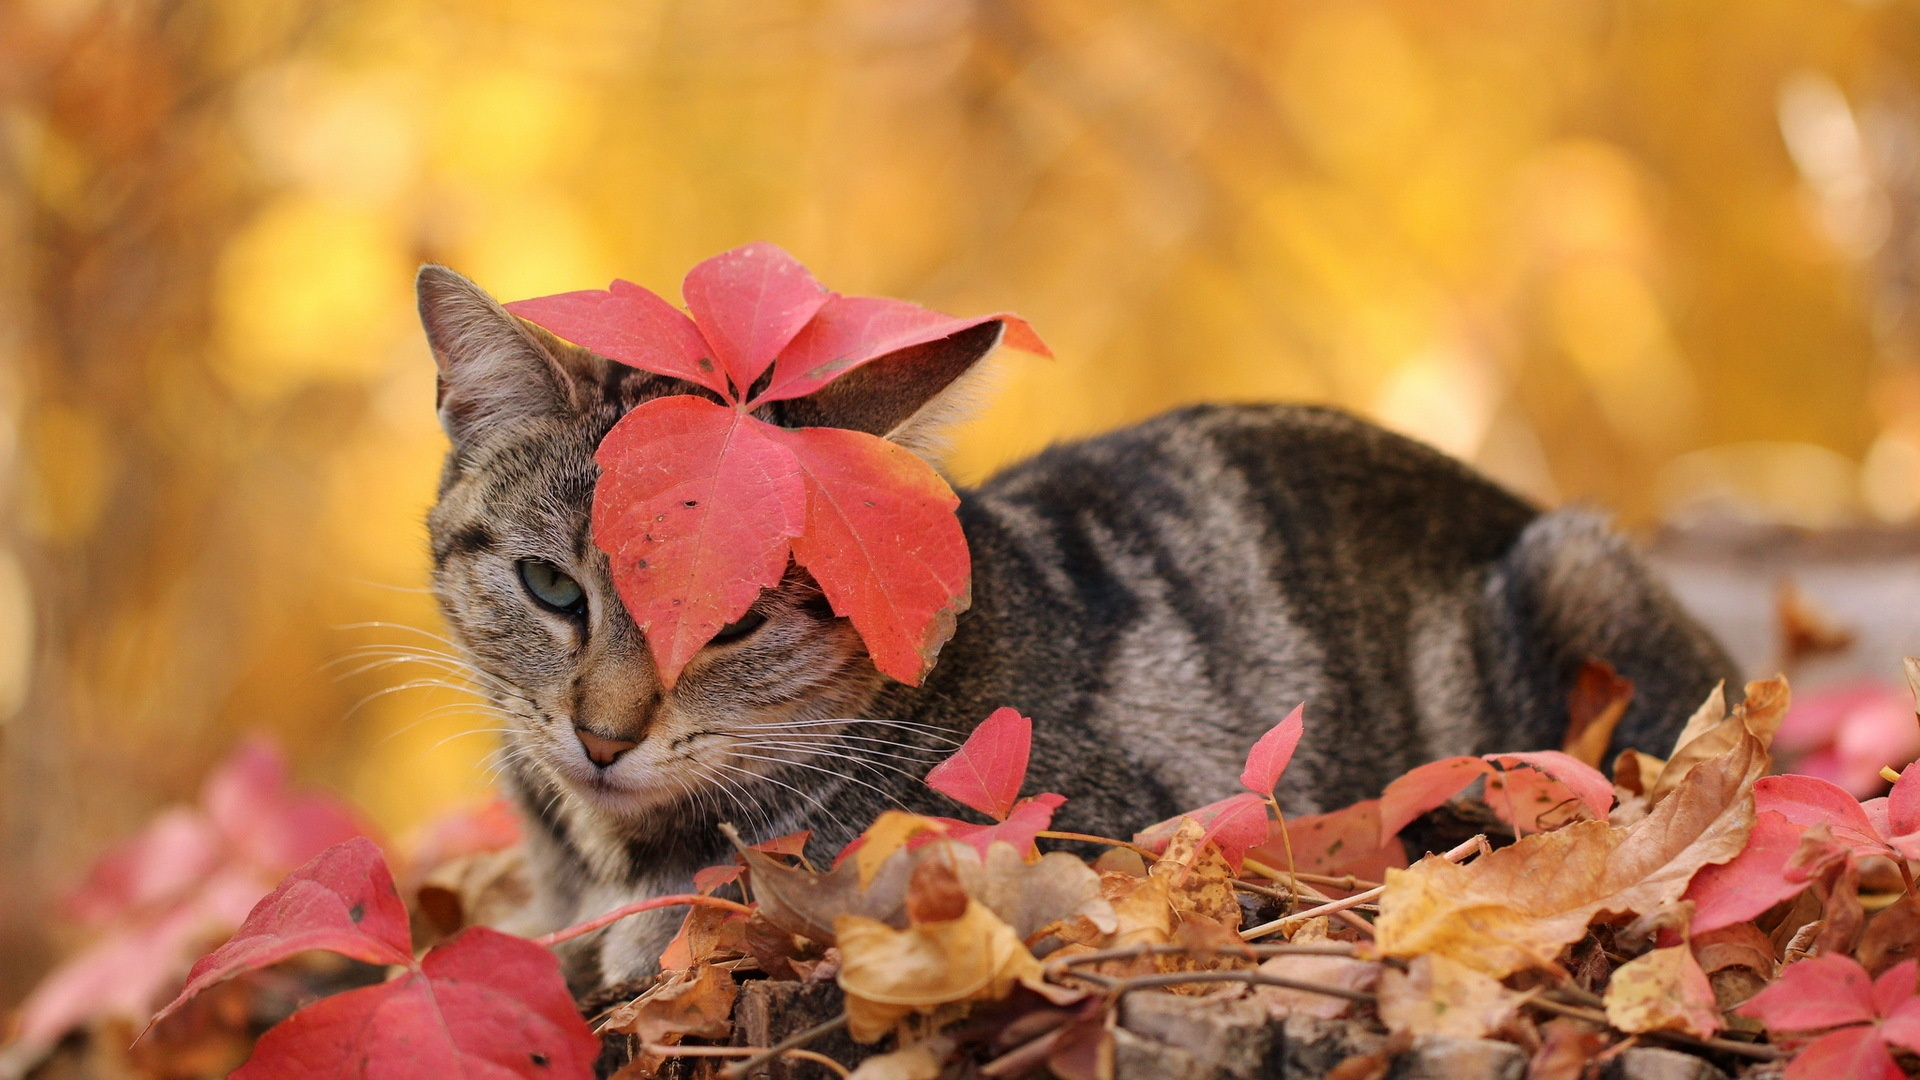 Collection of Autumn Cat Wallpaper on HDWallpapers